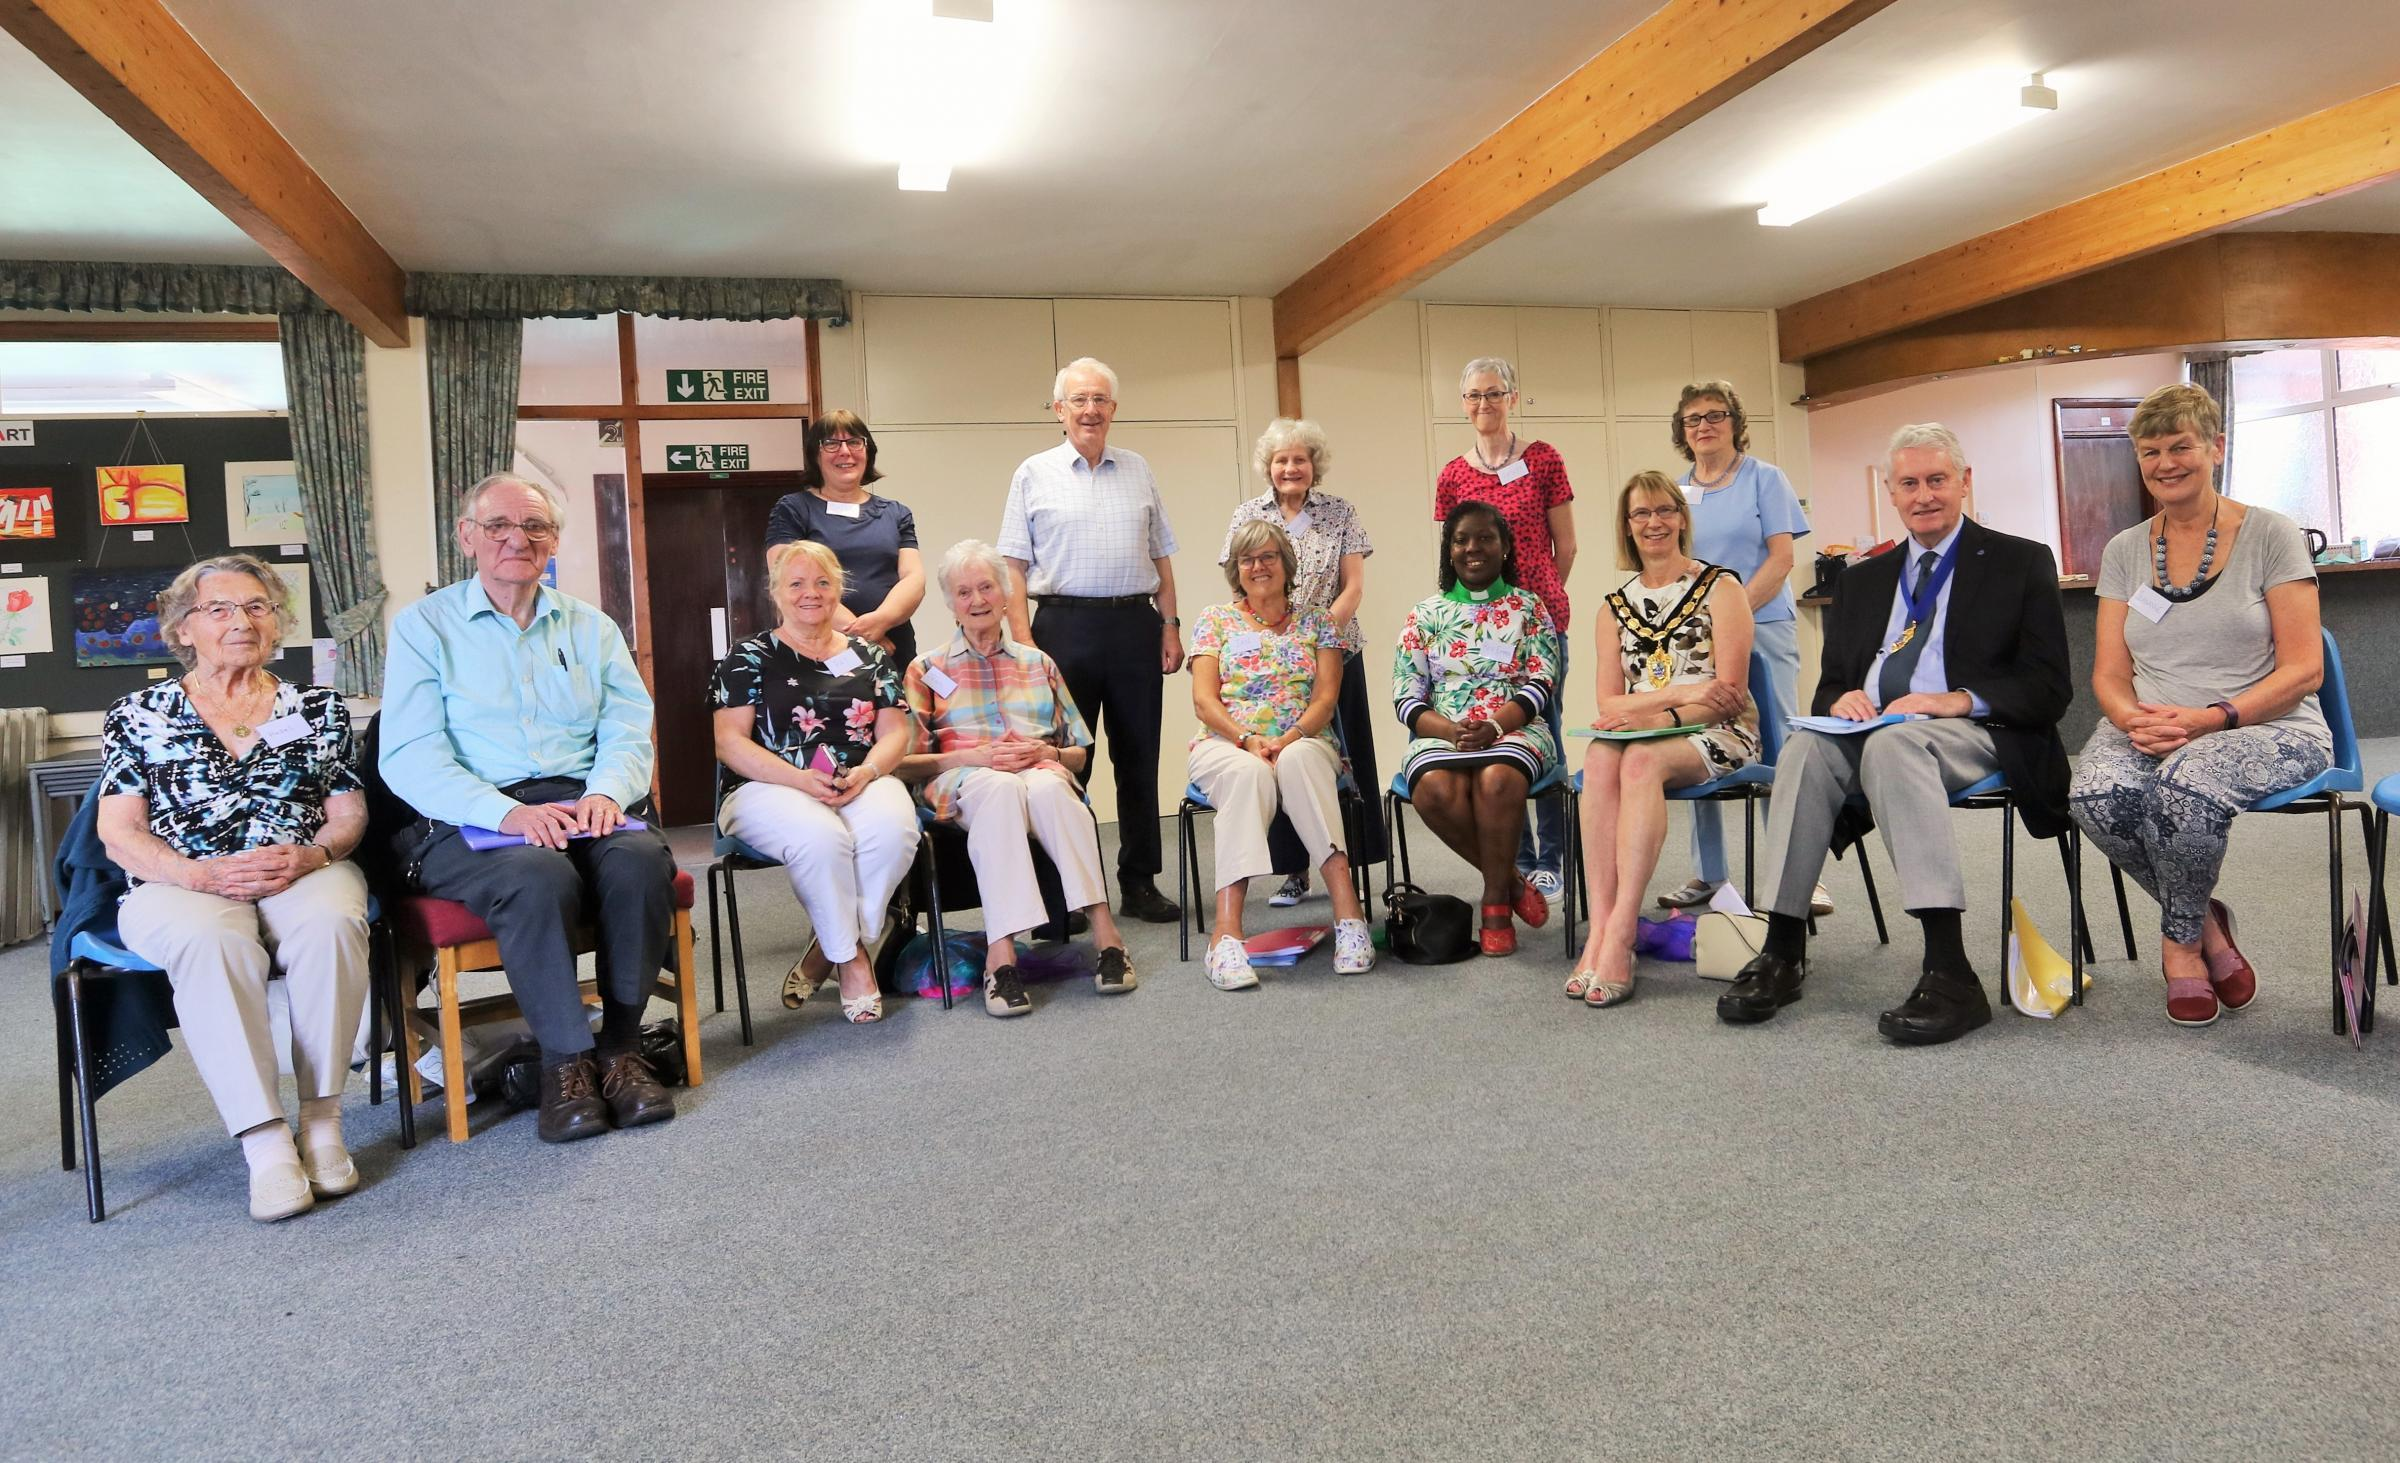 Stoneleigh Methodist Church's new singing group